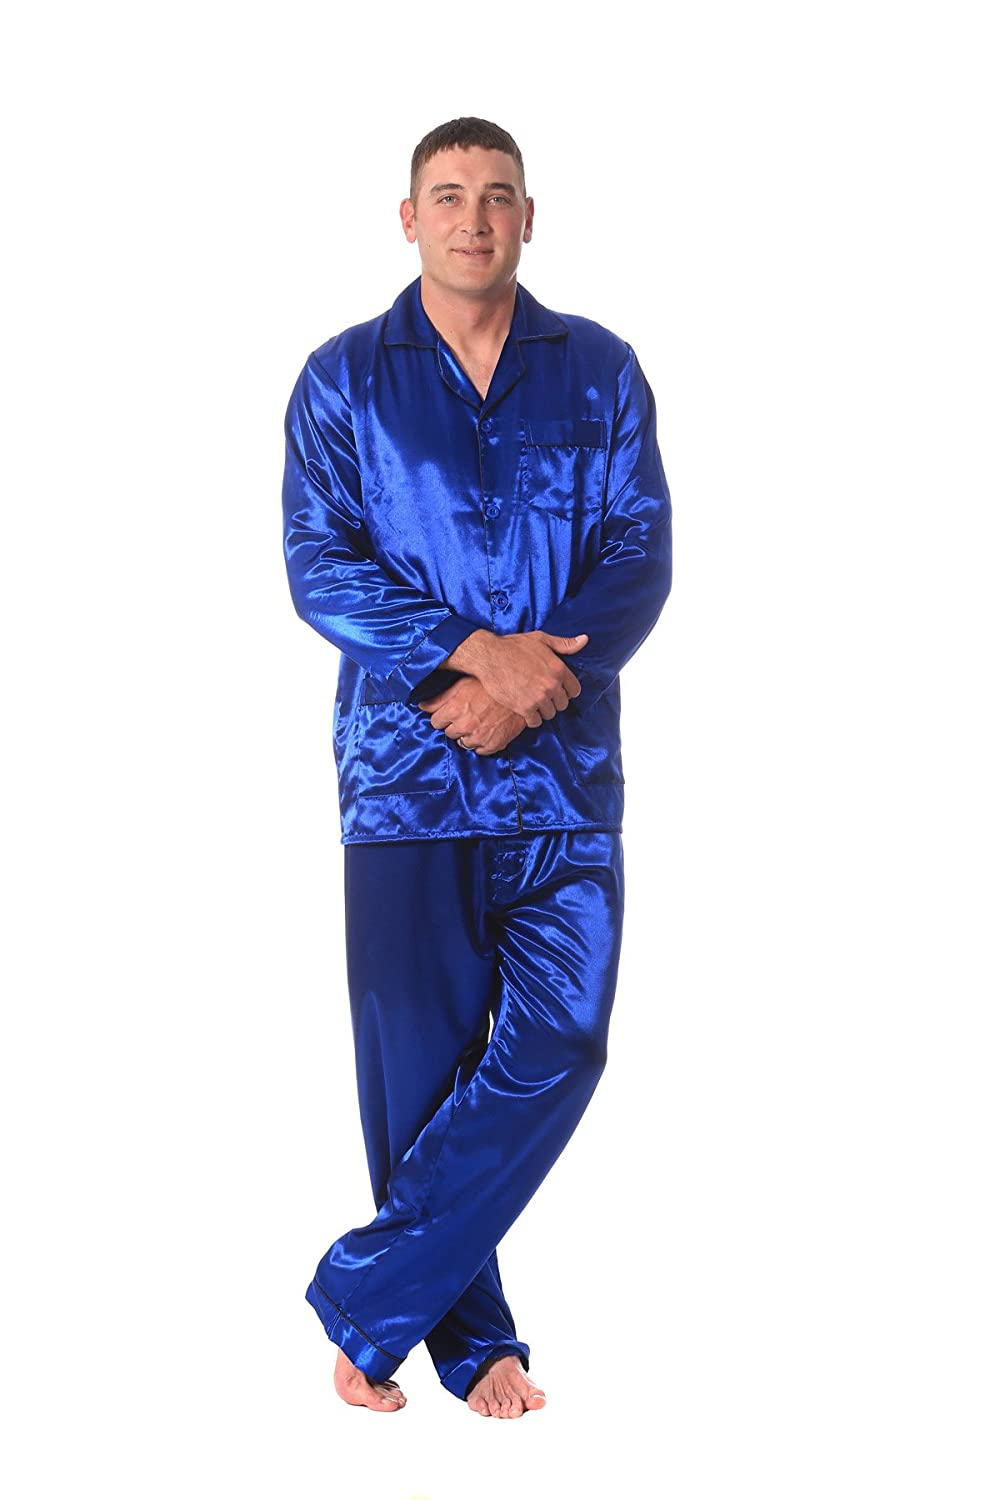 You can find individual sleepwear options, like men's pajama pants at Kohl's. If you're in search of a complete bedtime look, check out our line of men's pajama sets. And for a festive look for the holidays, shop Kohl's for men's Christmas pajamas and sleepwear for the whole family!